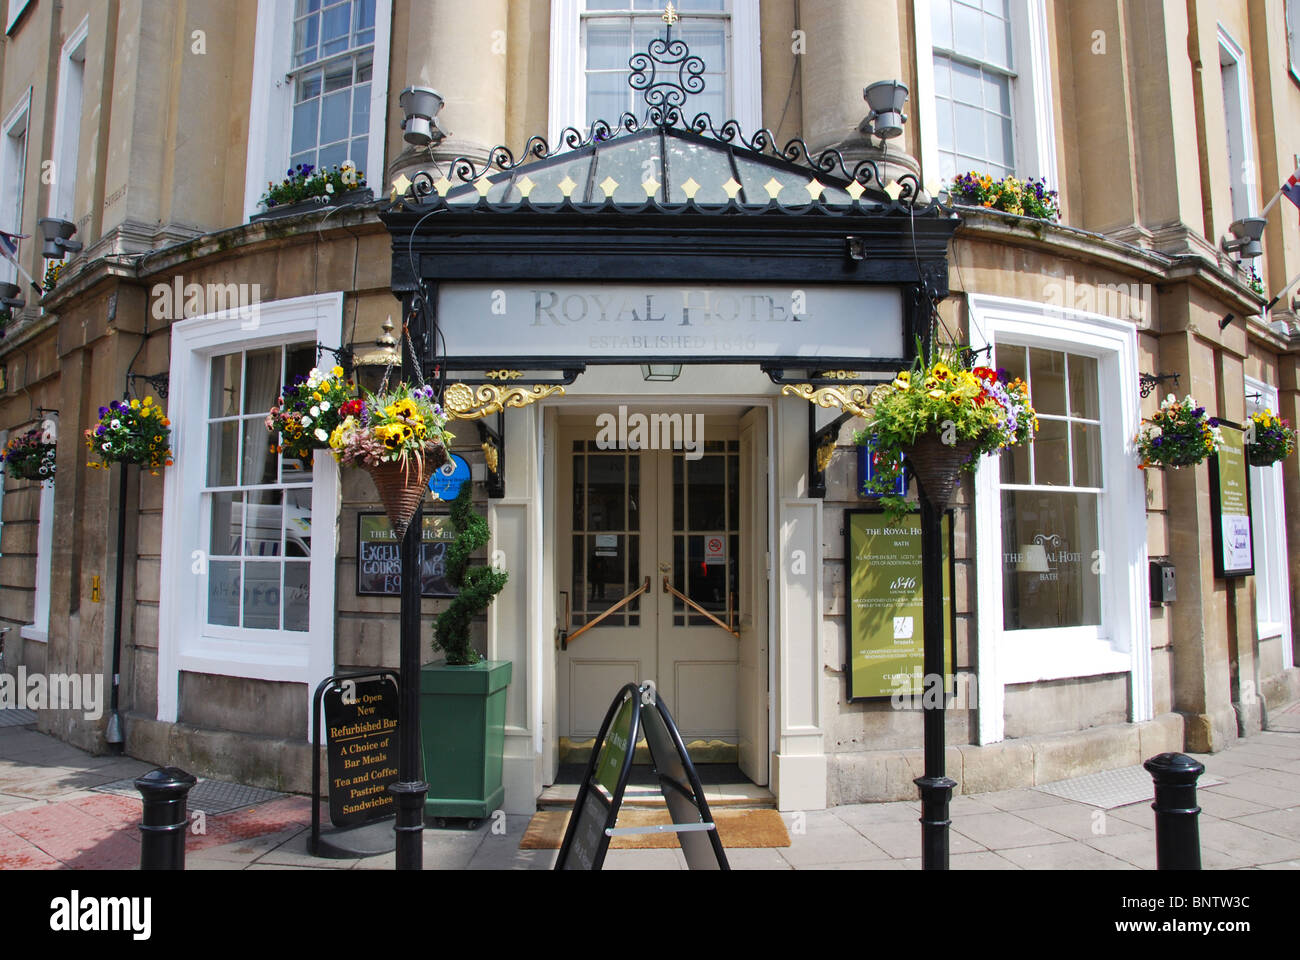 entrance to The Royal Hotel designed by Brunel, Bath UK - Stock Image